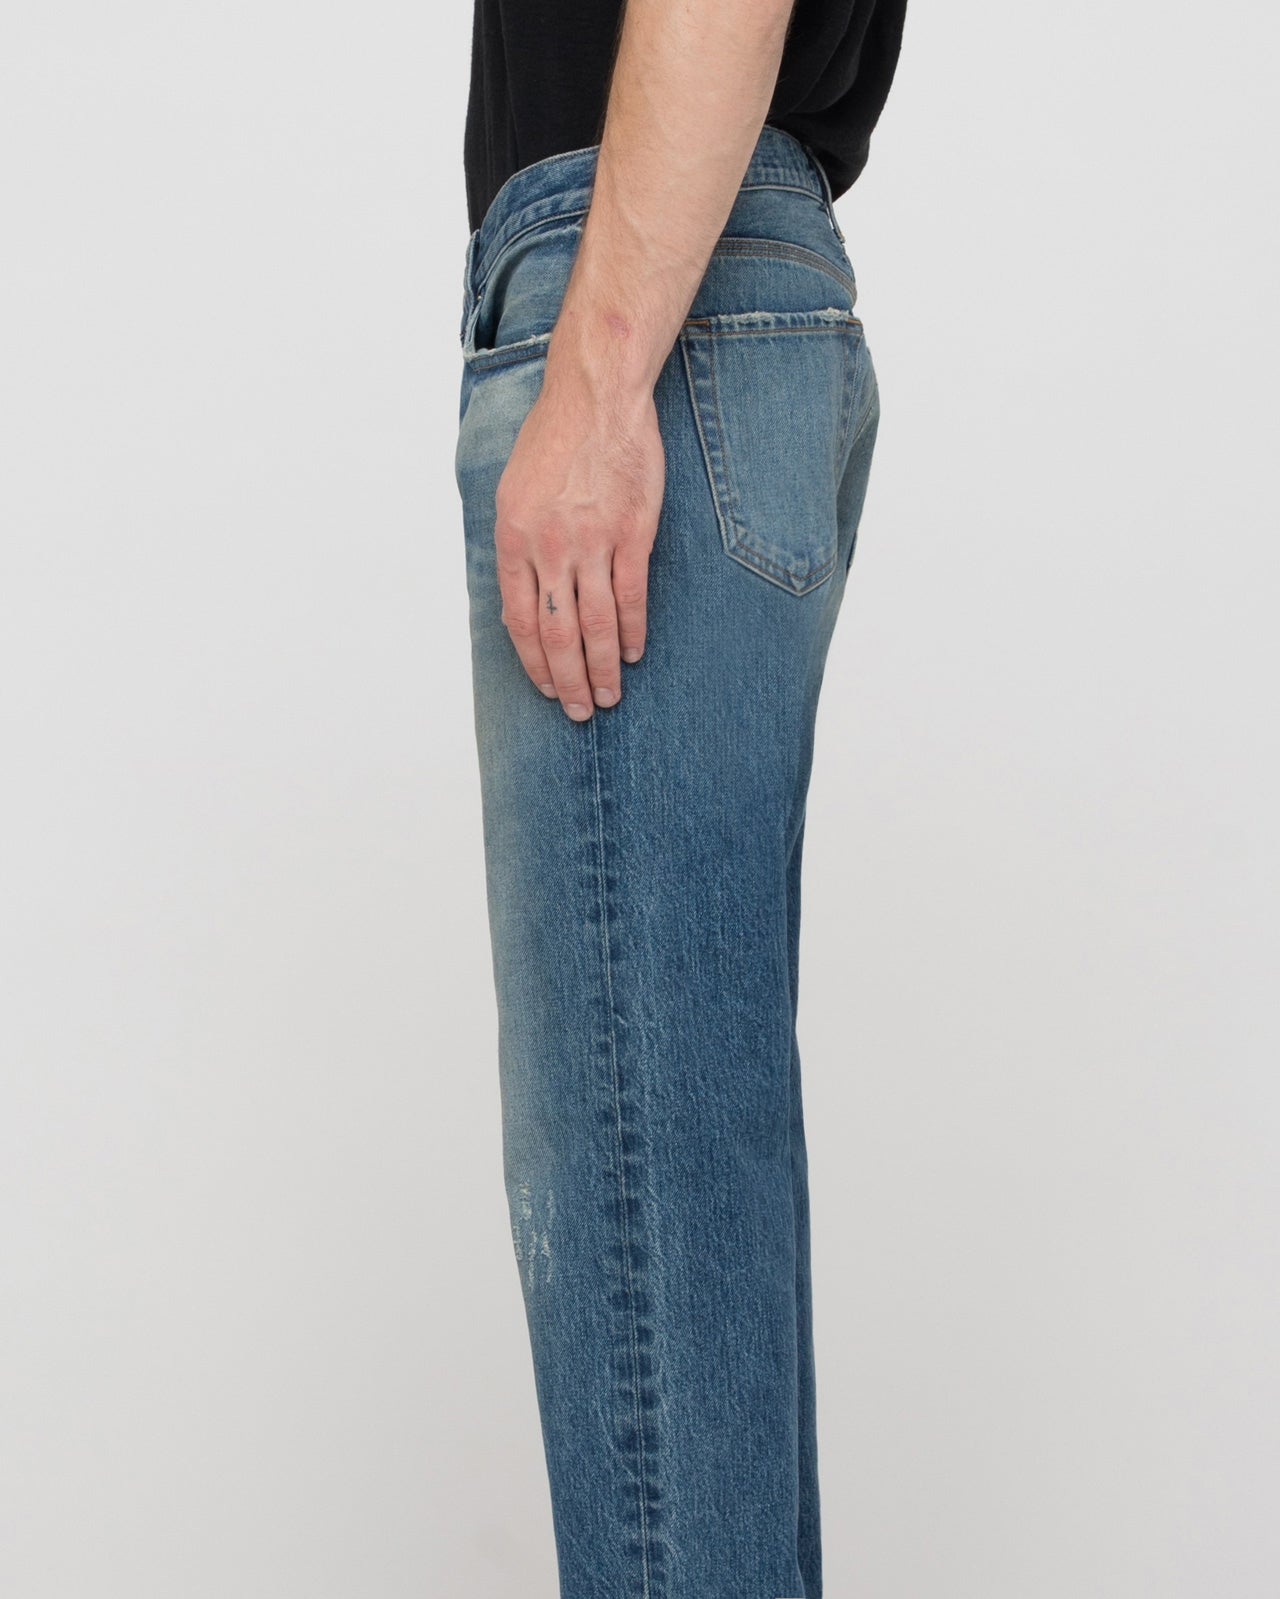 The Henley Jean in Taos